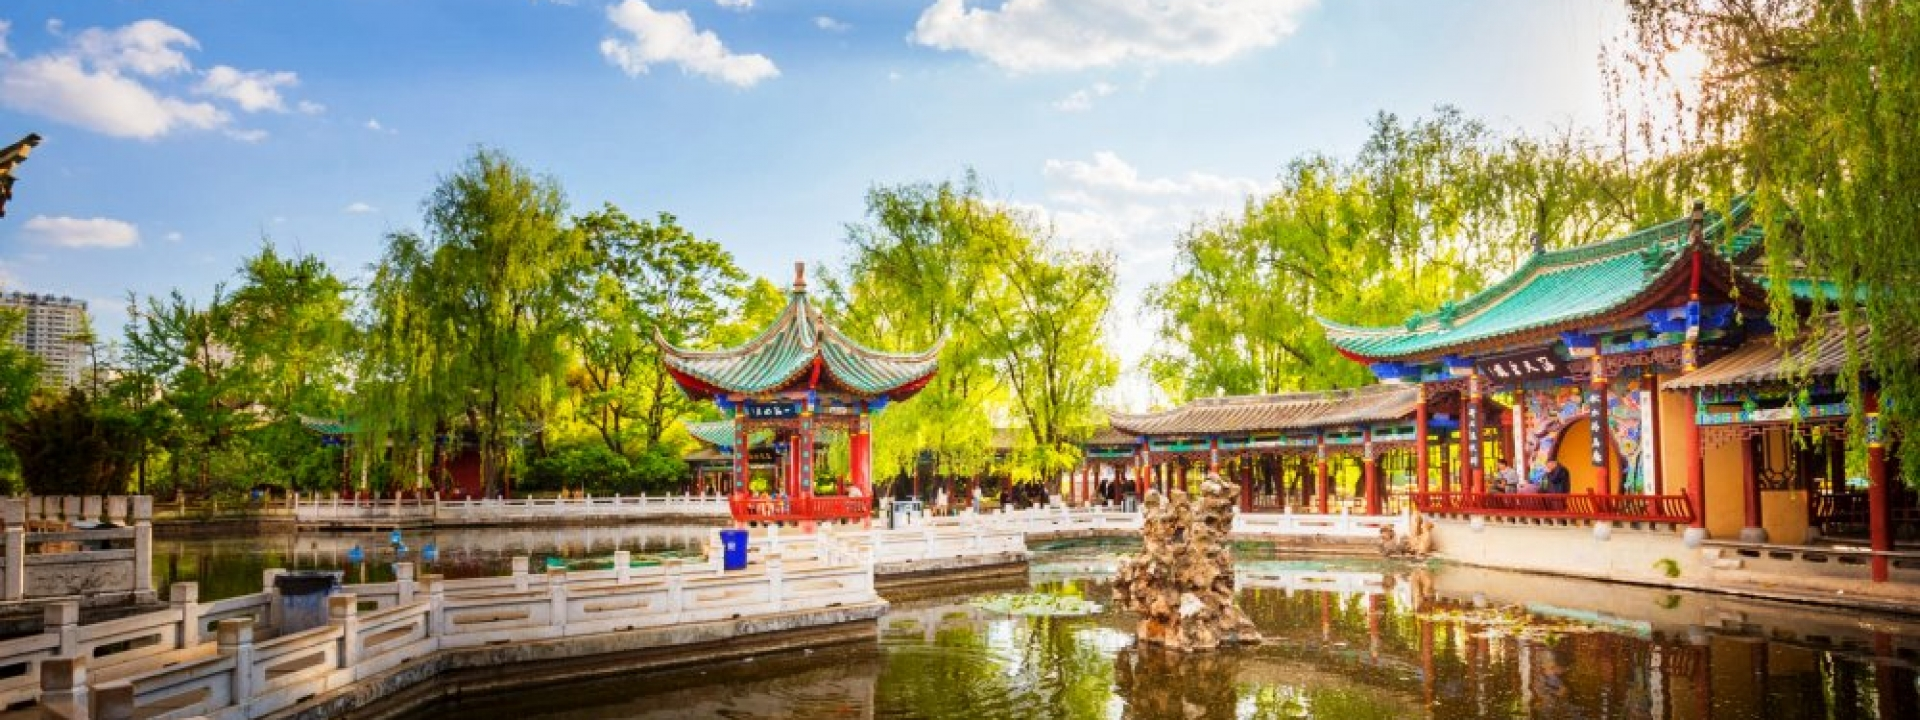 Paket Muslim Tour Kunming China - 6D4N